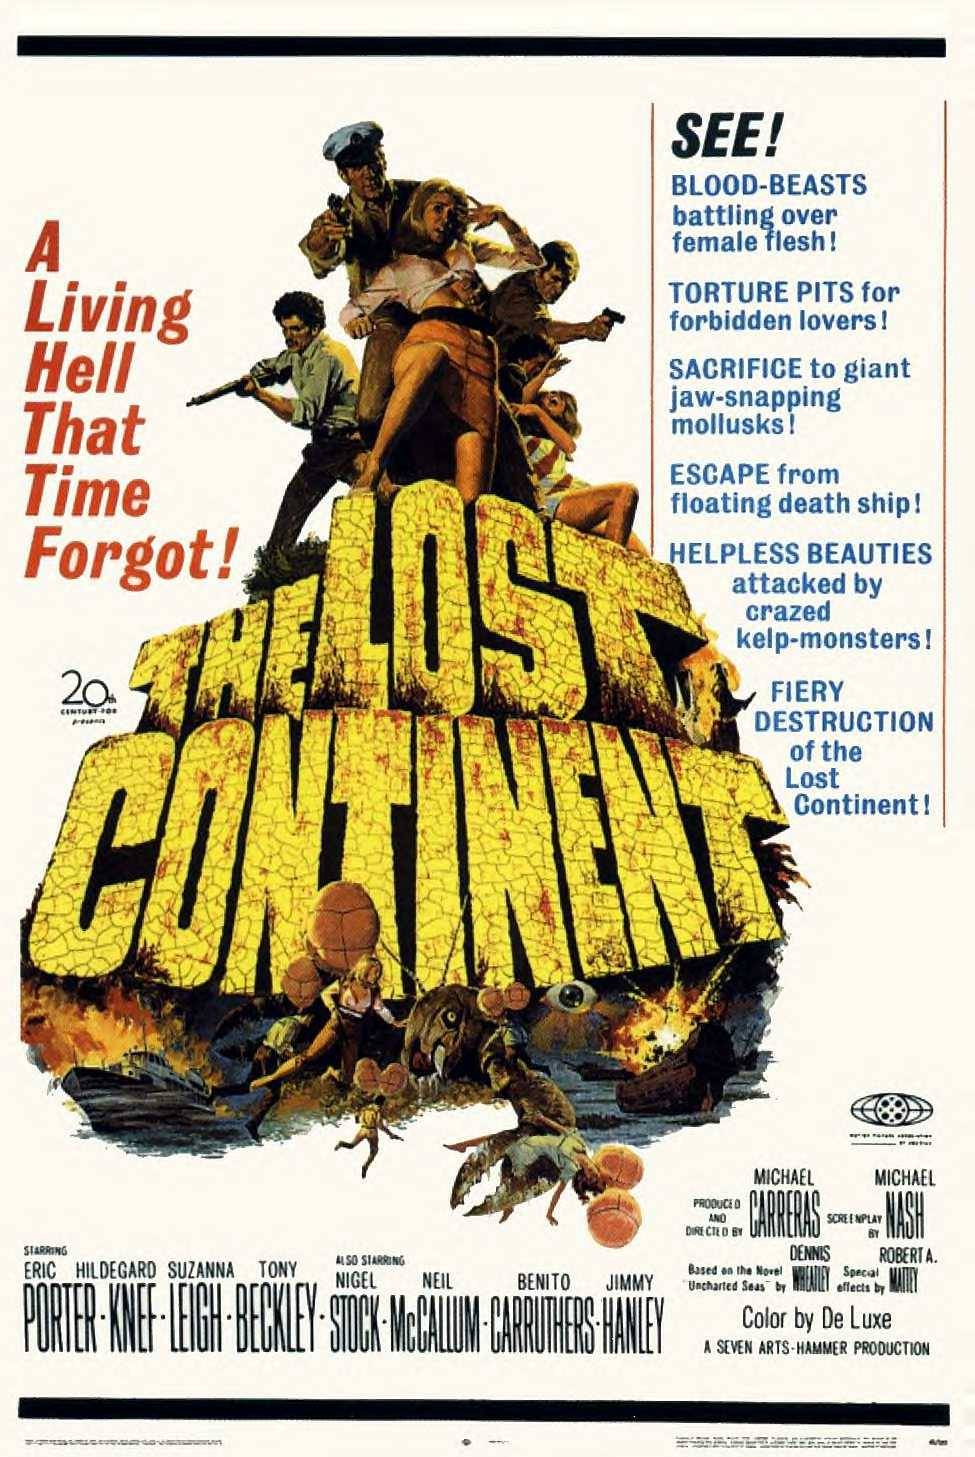 lost_continent_poster_1968_01.jpg